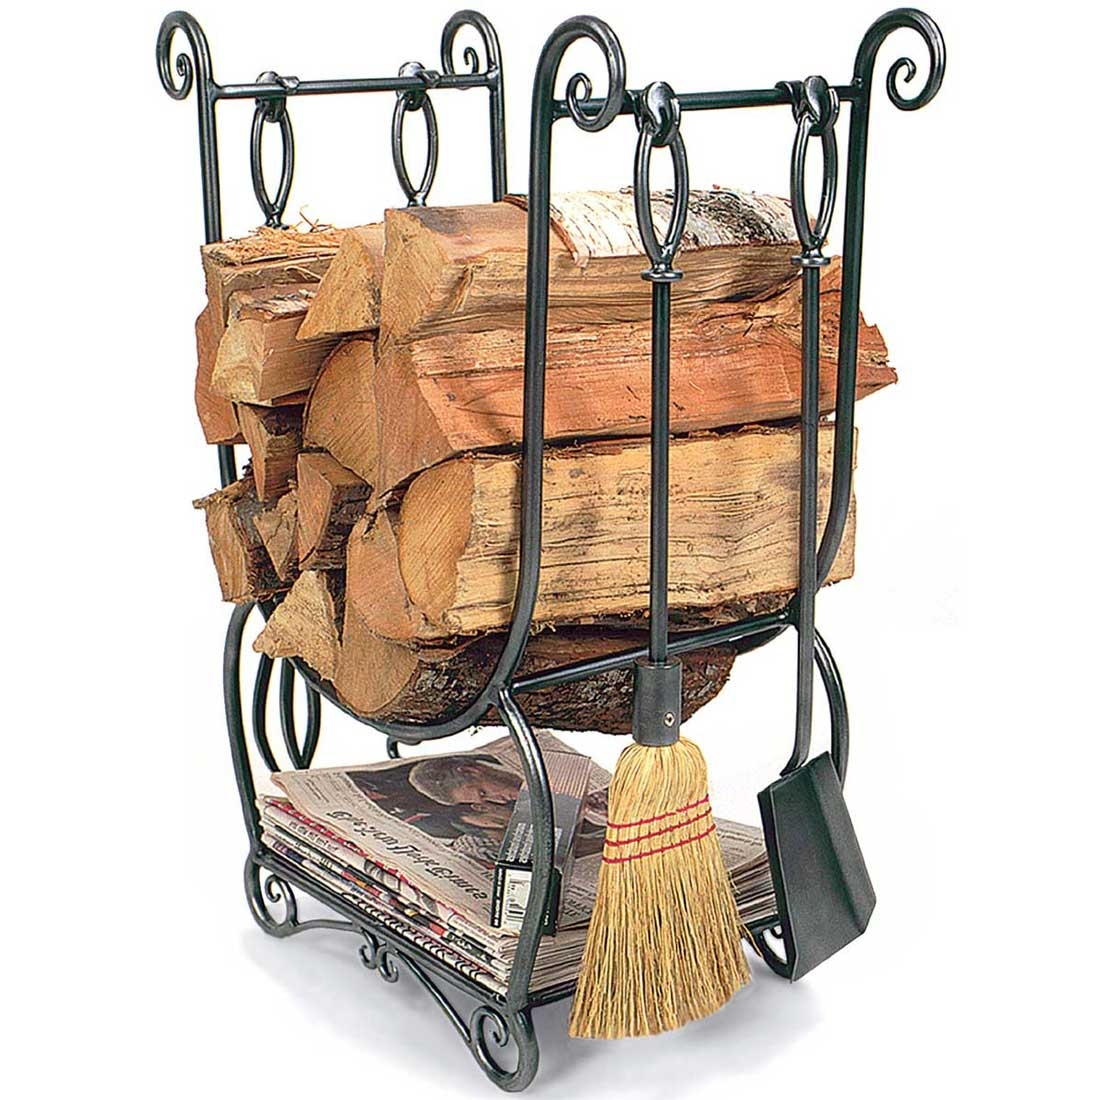 Pictured is the Country Hearth Wood Holder with Fireplace Tool Set  manufactured by Minuteman - Country Hearth Wood Holder With Fireplace Tool Set Minuteman